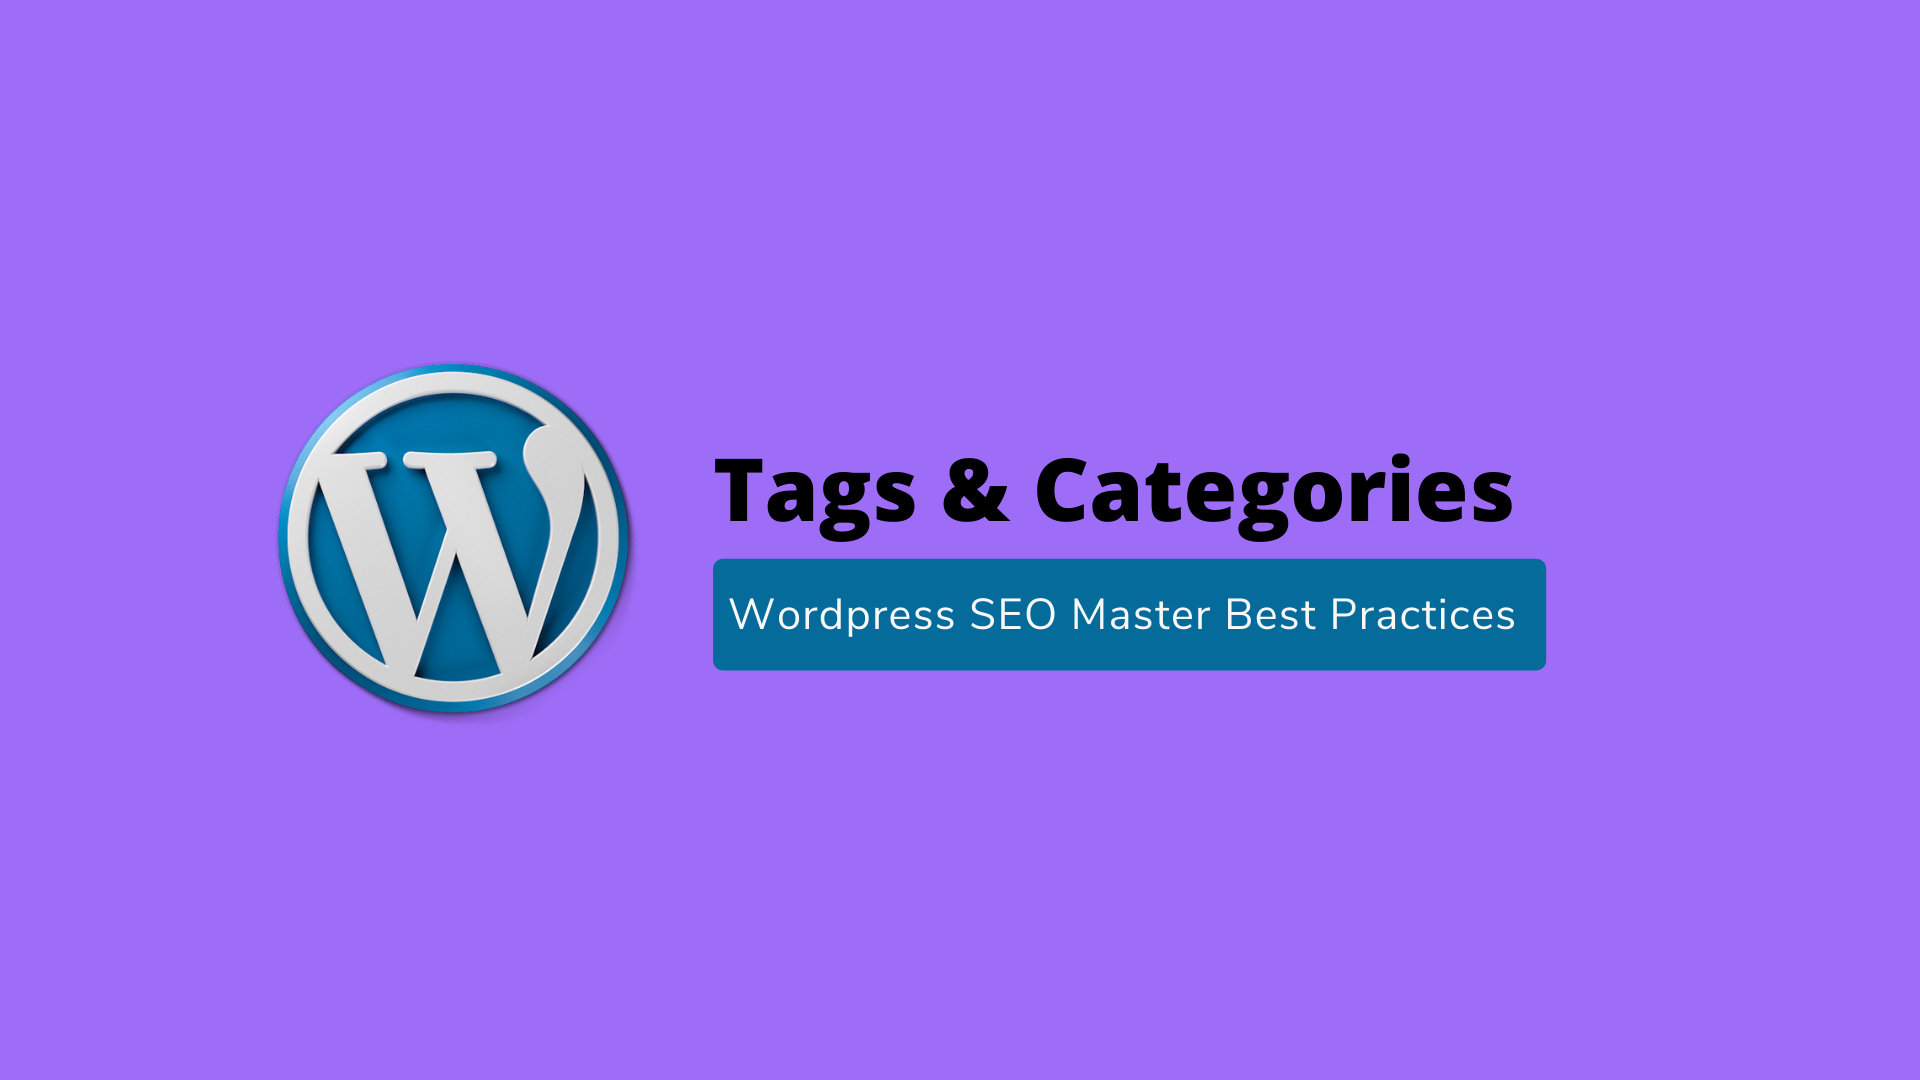 Tags & Categories